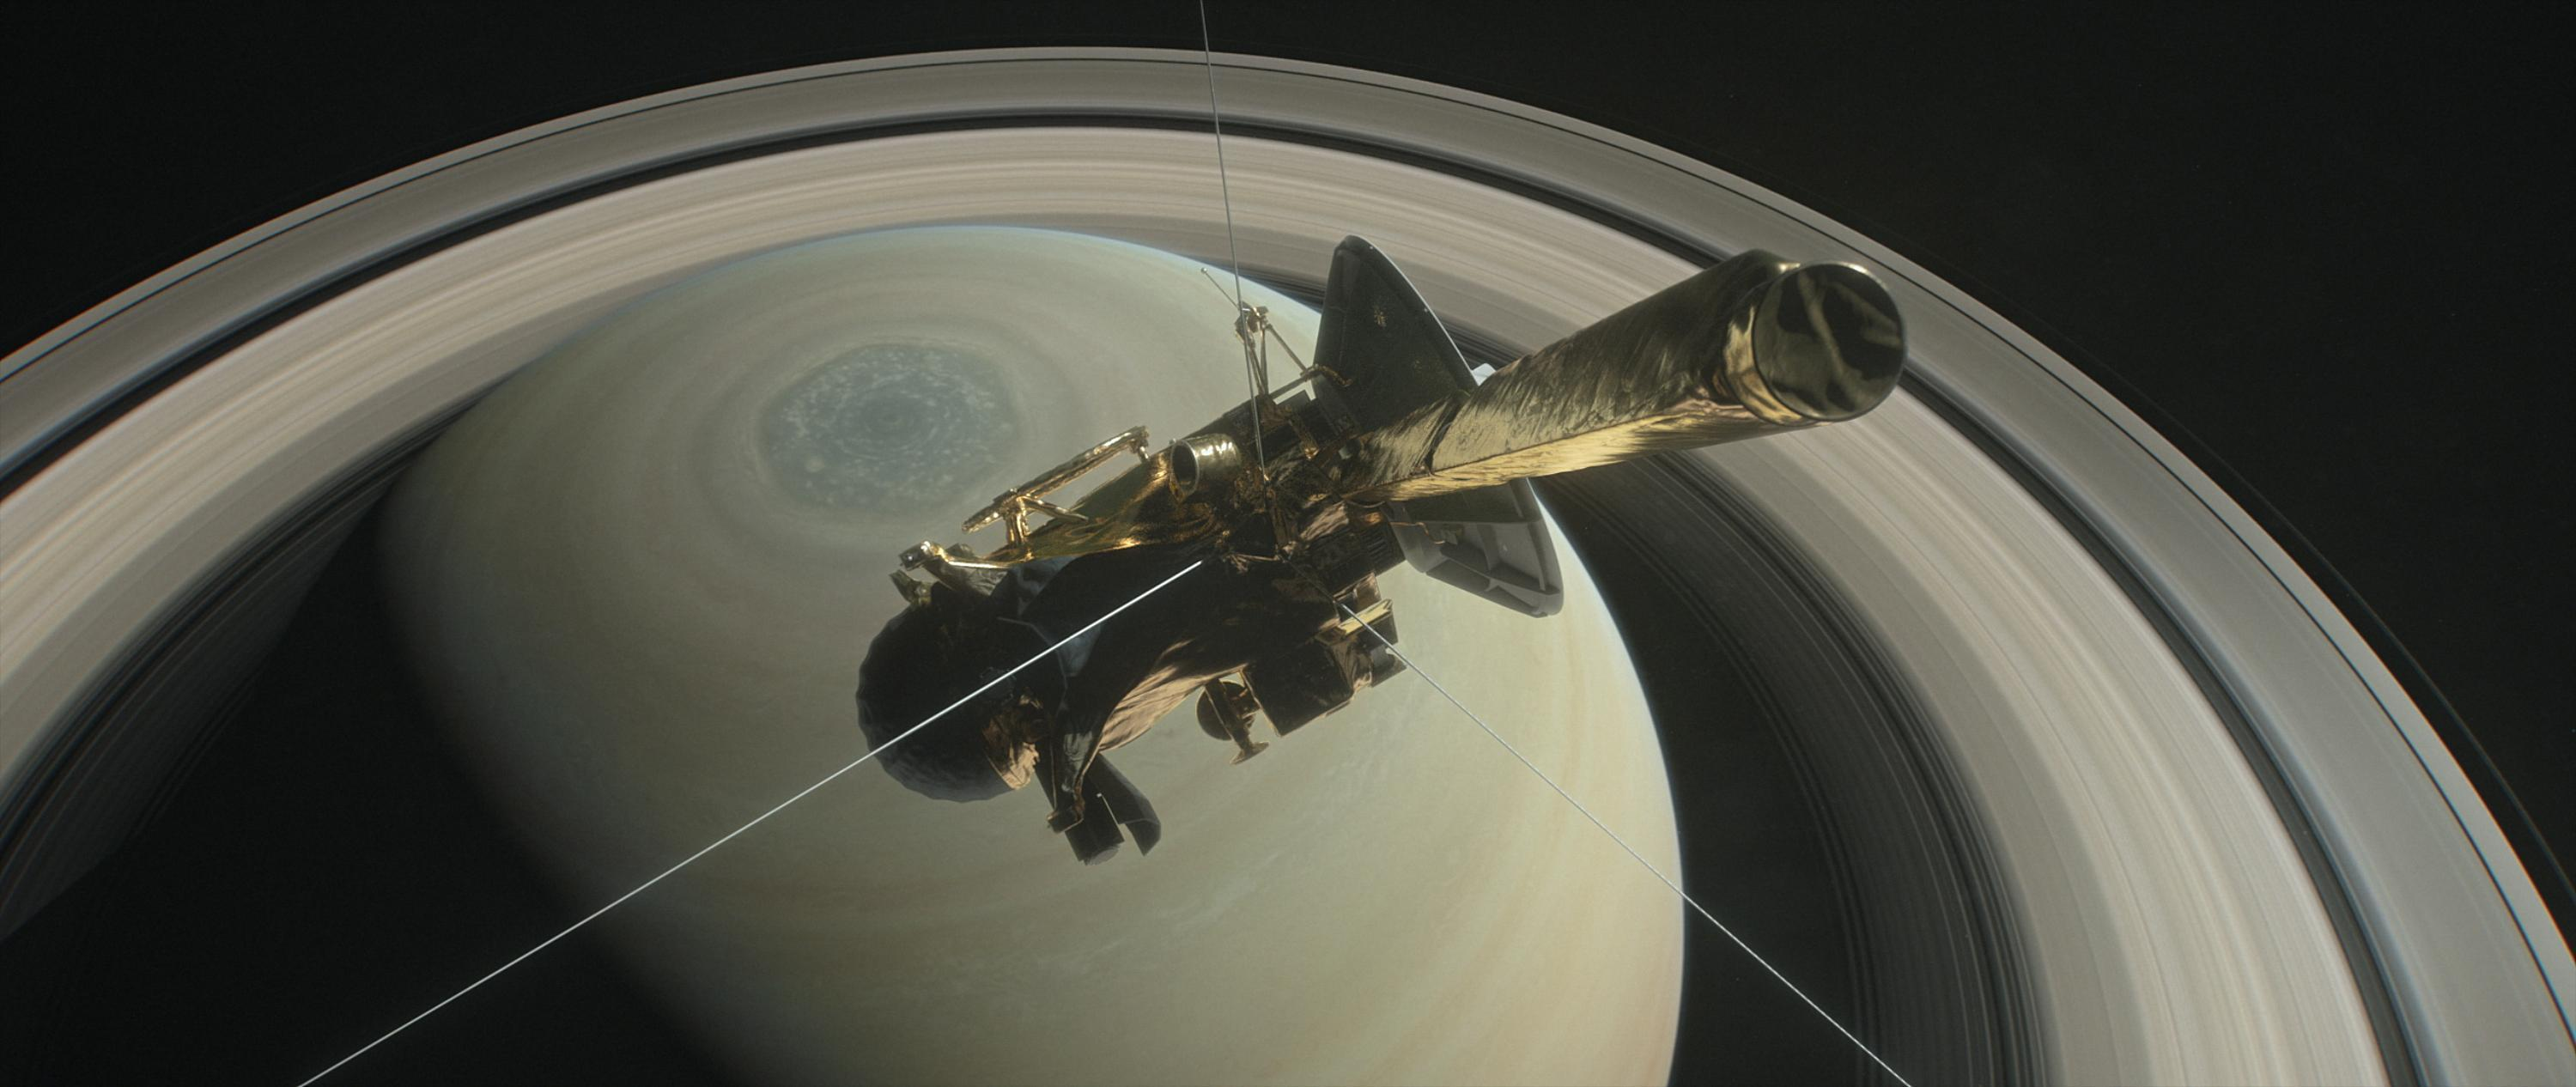 NASA's Cassini spacecraft is shown heading for the gap between Saturn and its rings during one of 22 such dives of the mission's finale in this illustration. The spacecraft will make a final plunge into the planet's atmosphere on Sept. 15.